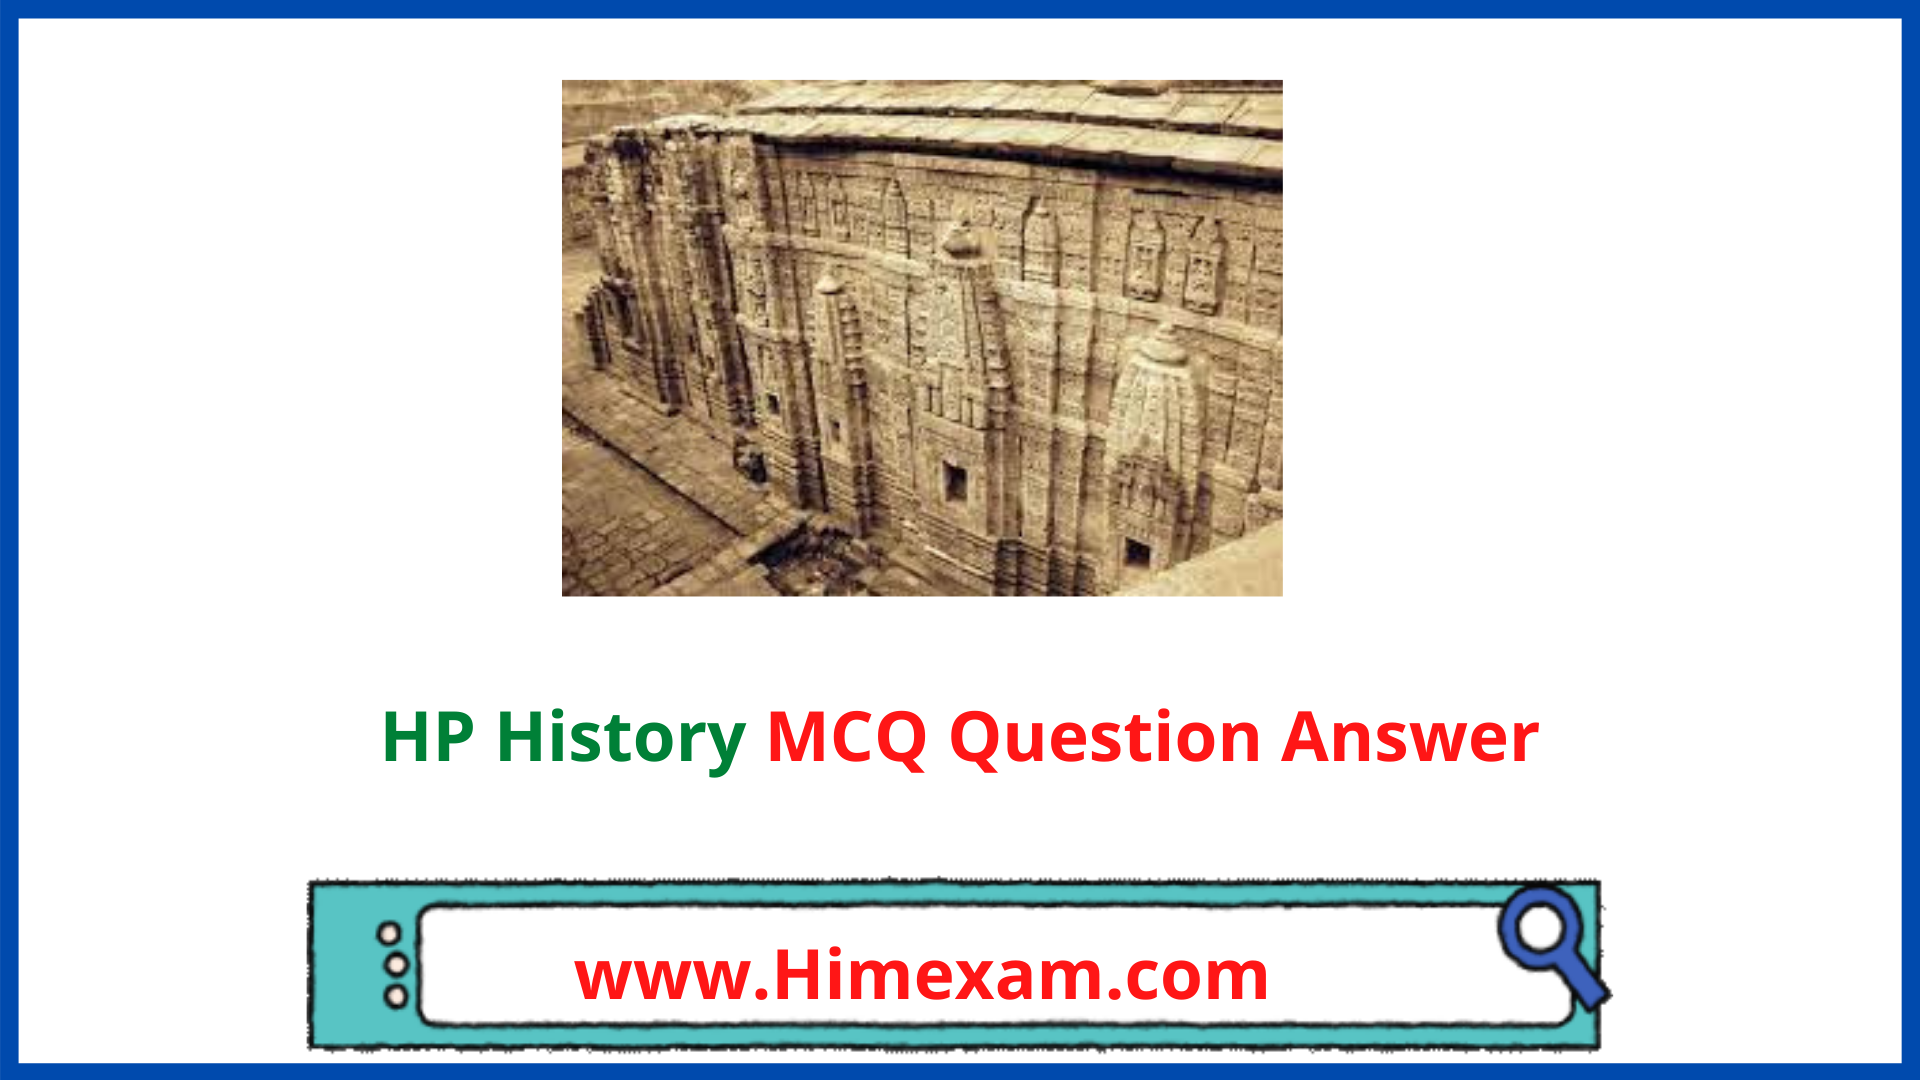 HP History MCQ Question Answer